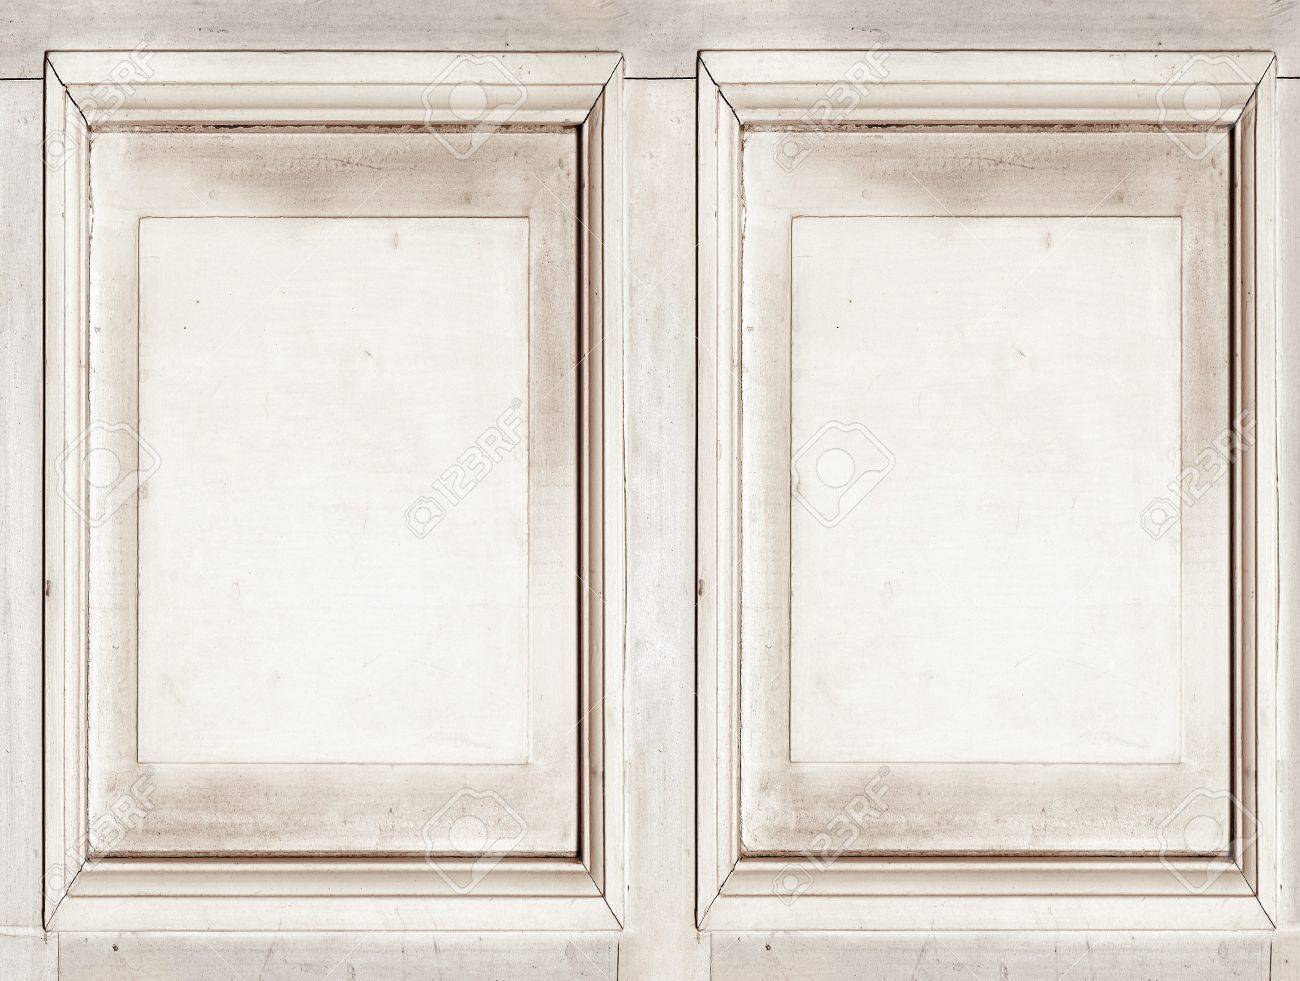 double frame of old whitewood rough texture free space for your photo or text stock